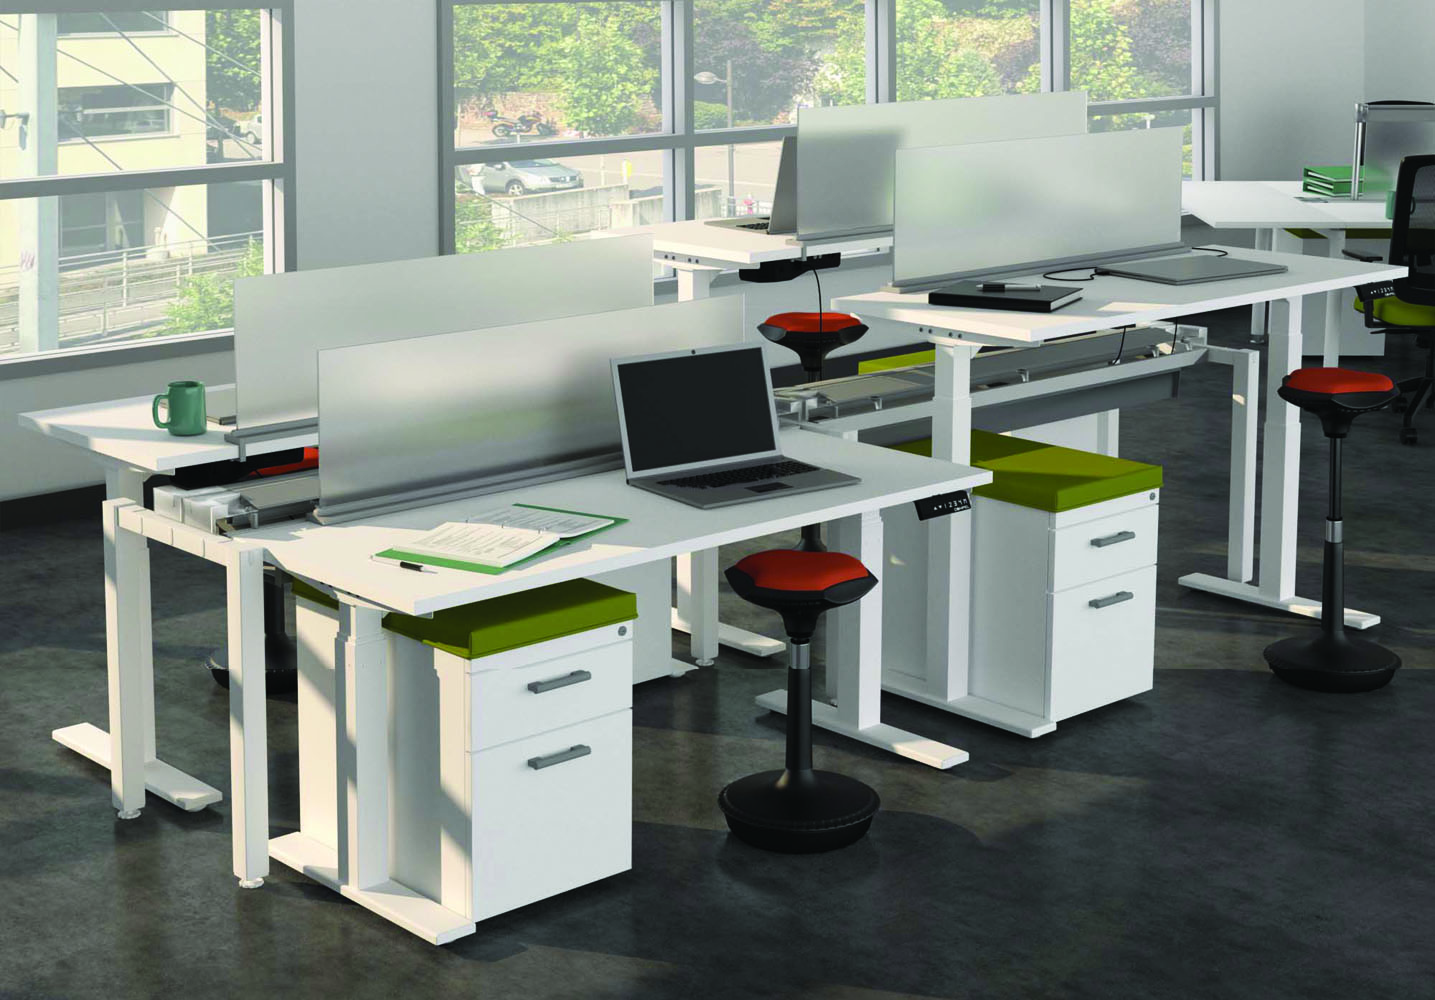 Computer Desk And Chair Set - Team Spaces Office Furniture Sets